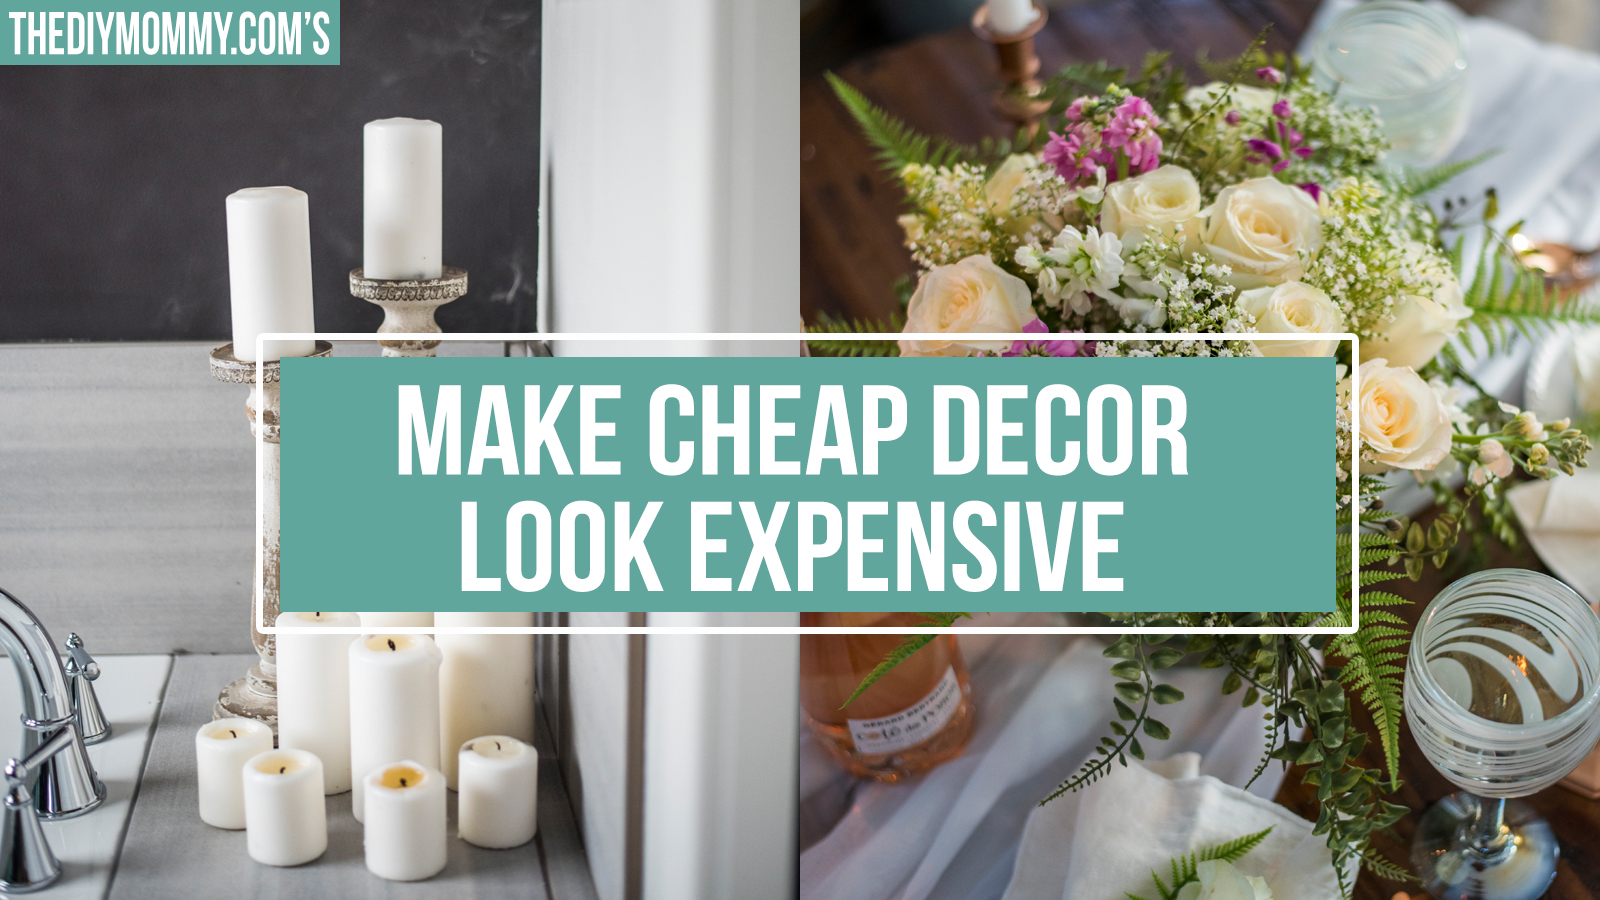 How to make cheap decor look expensive